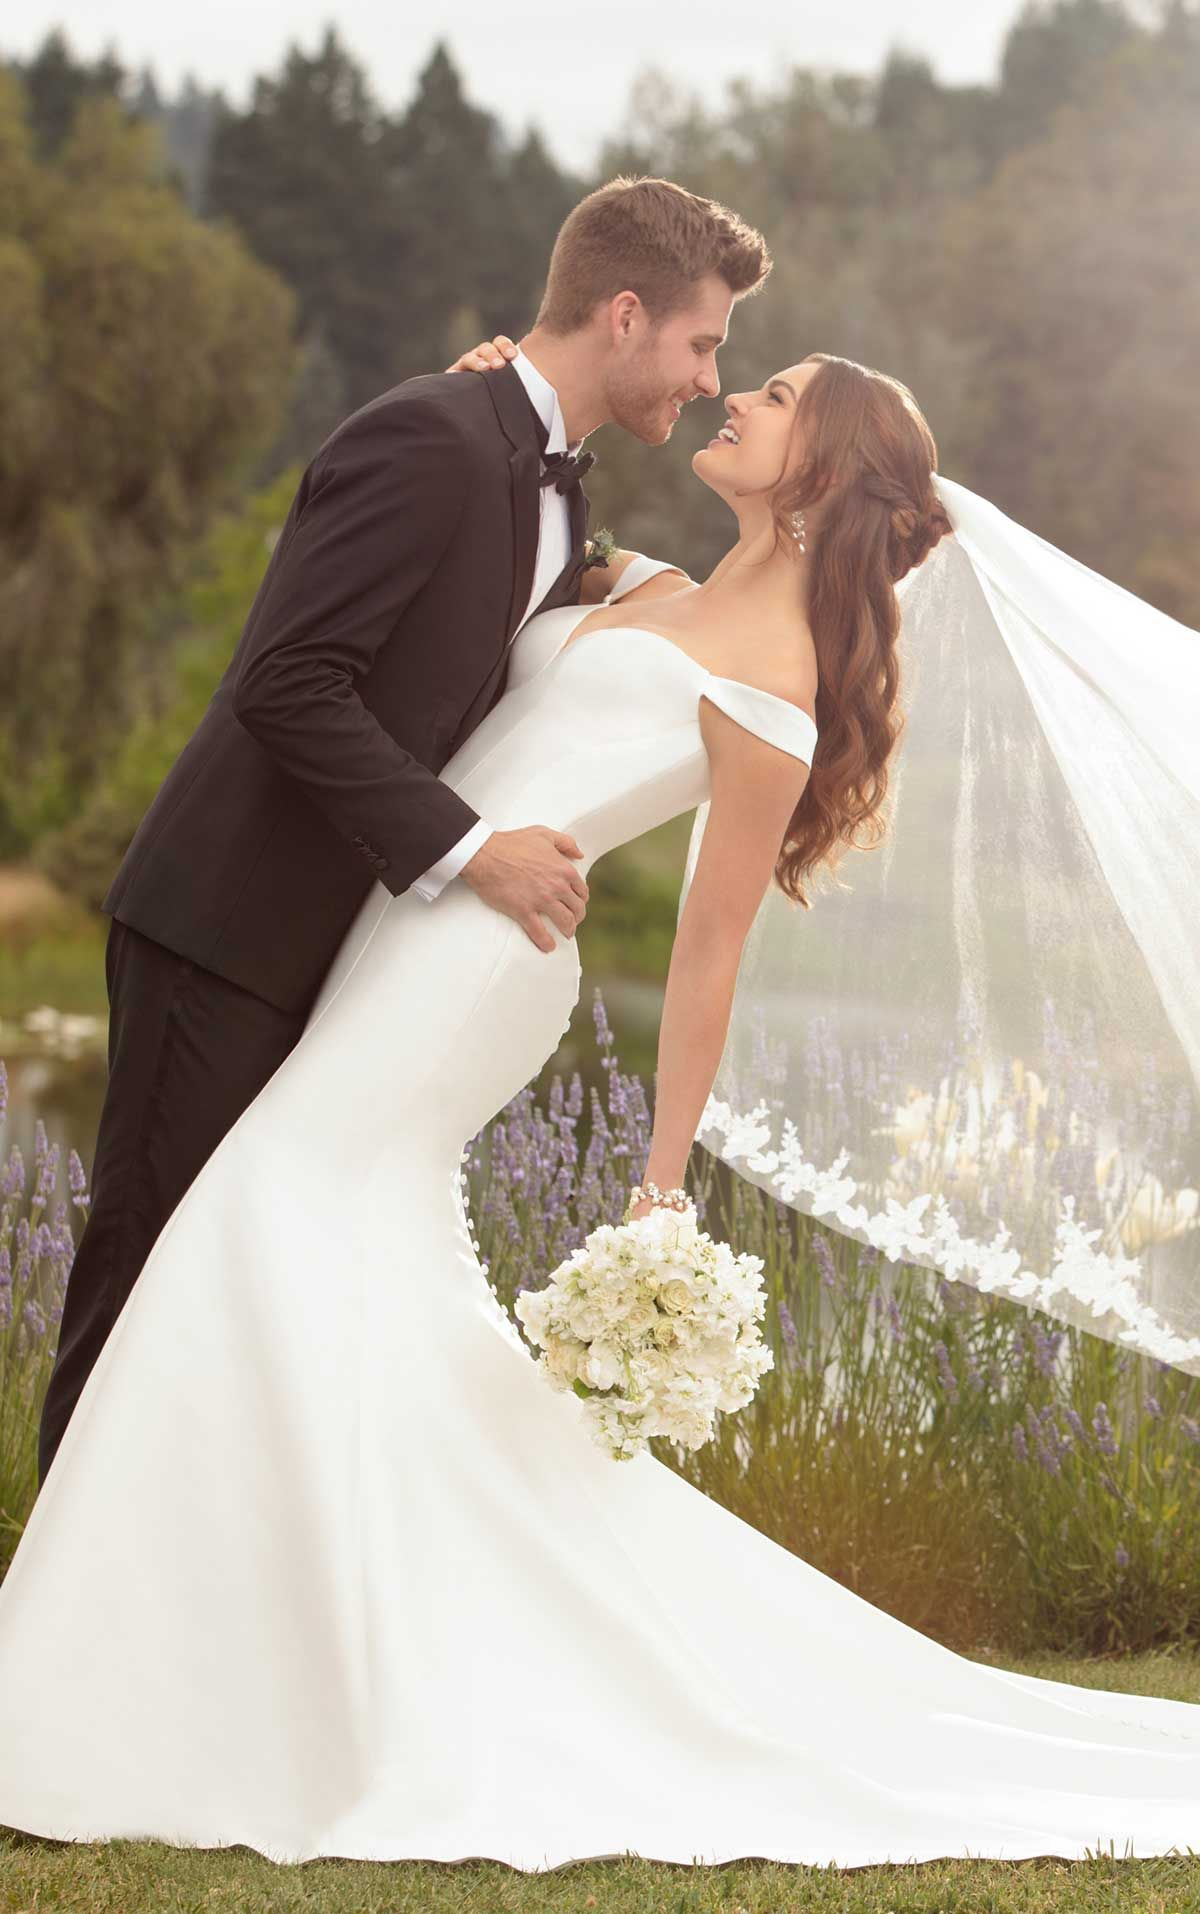 Simple Off-the-Shoulder Wedding Gown  Wedding picture poses